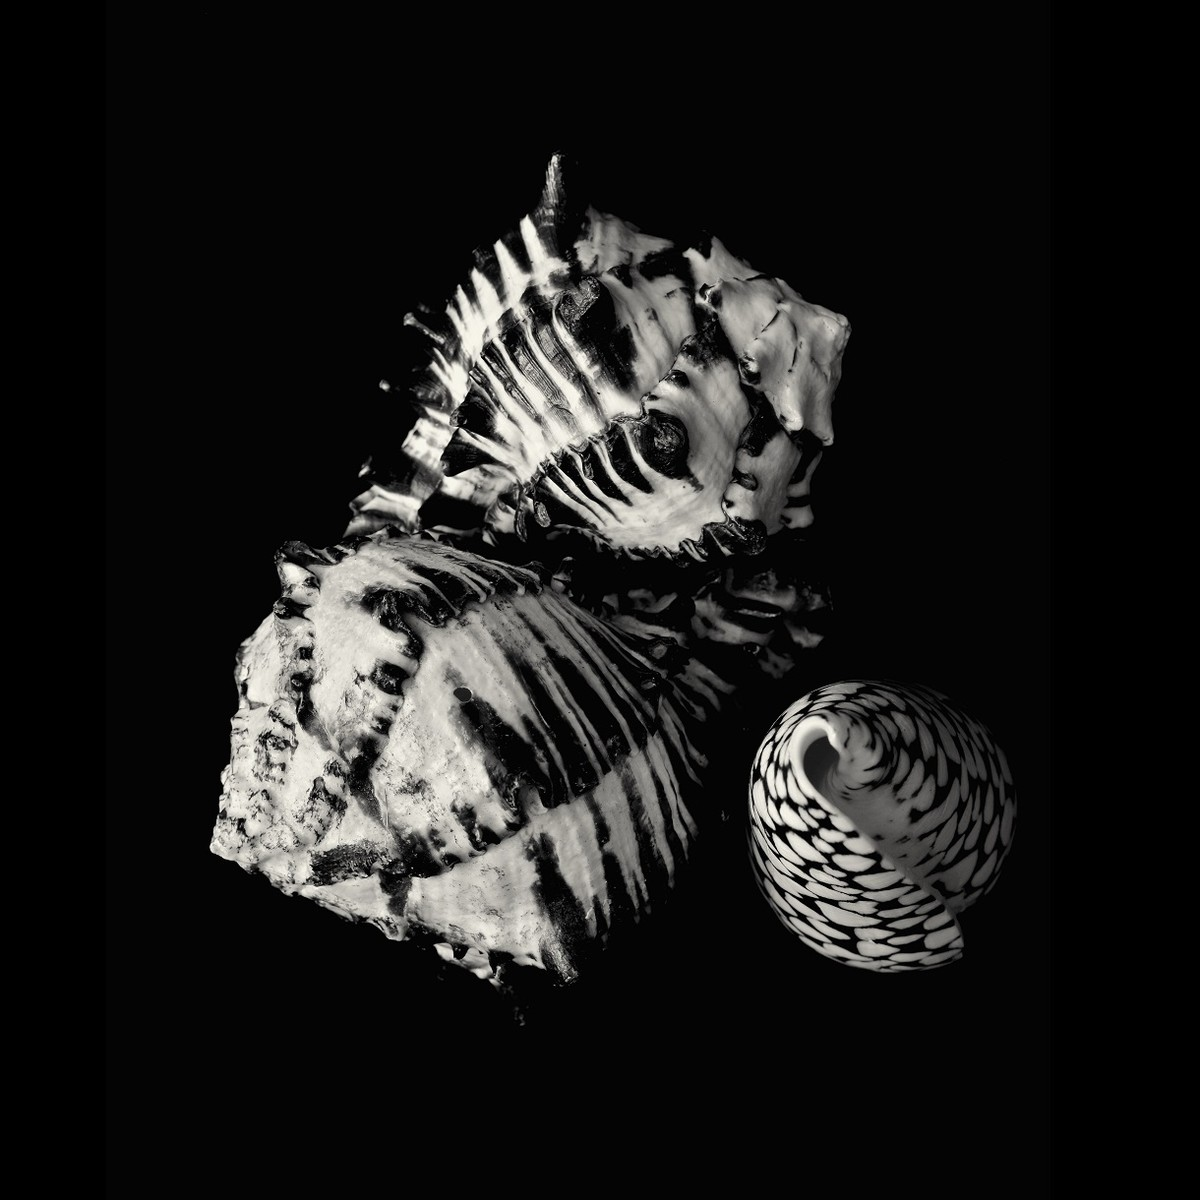 Seashells No. 35 by M. Shafiq, Image Photography, Digital Print on Archival Paper, Cotton Seed color